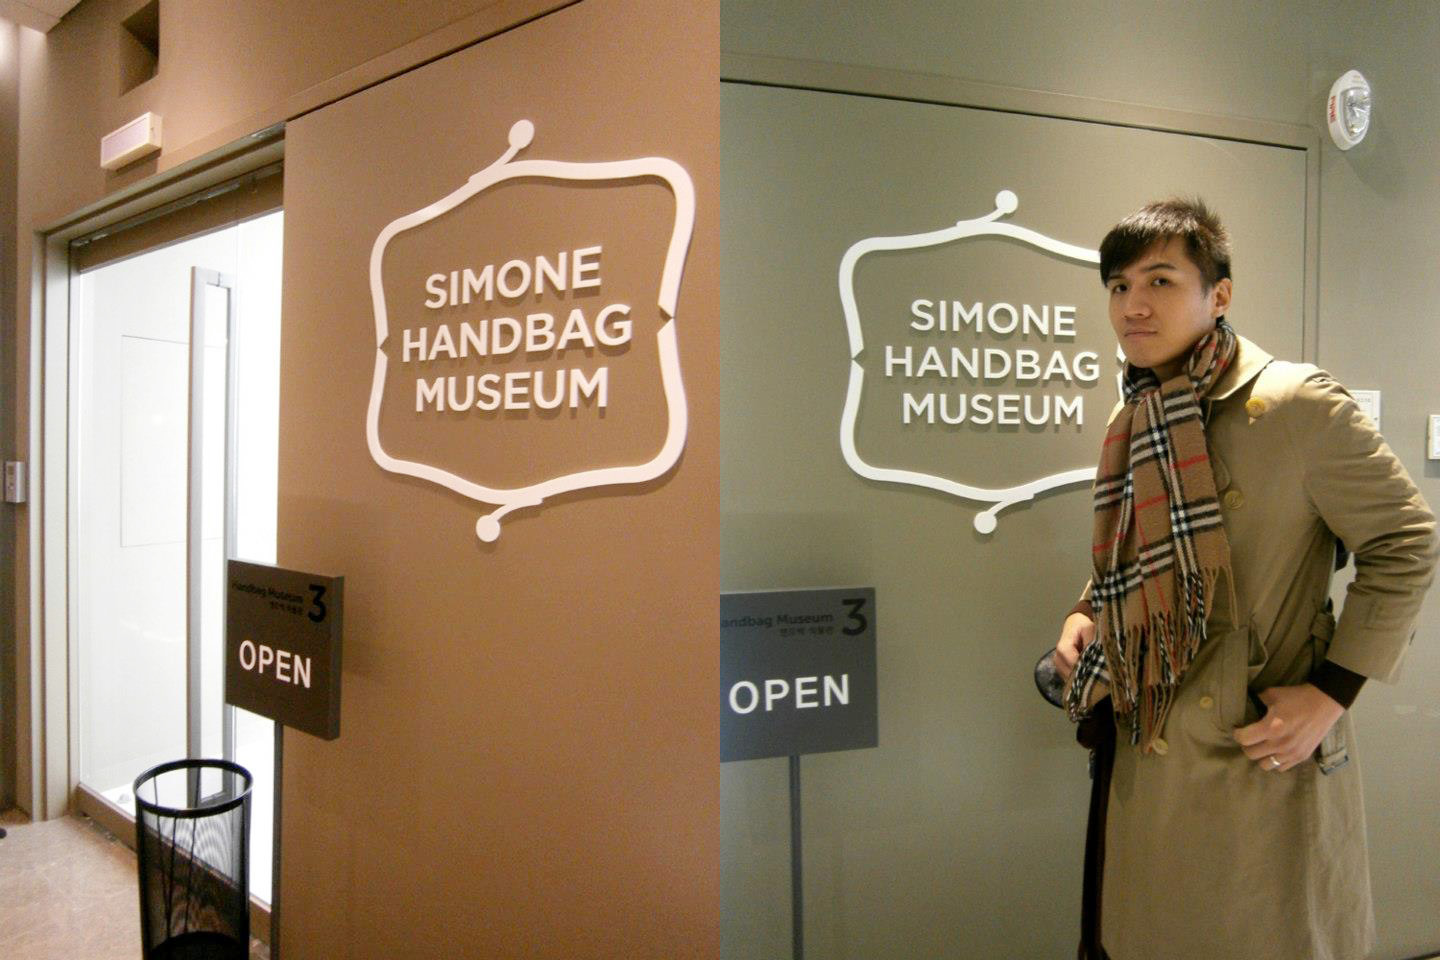 Entrance - Simone Handbag Museum, Gangnam-gu, Seoul, South Korea